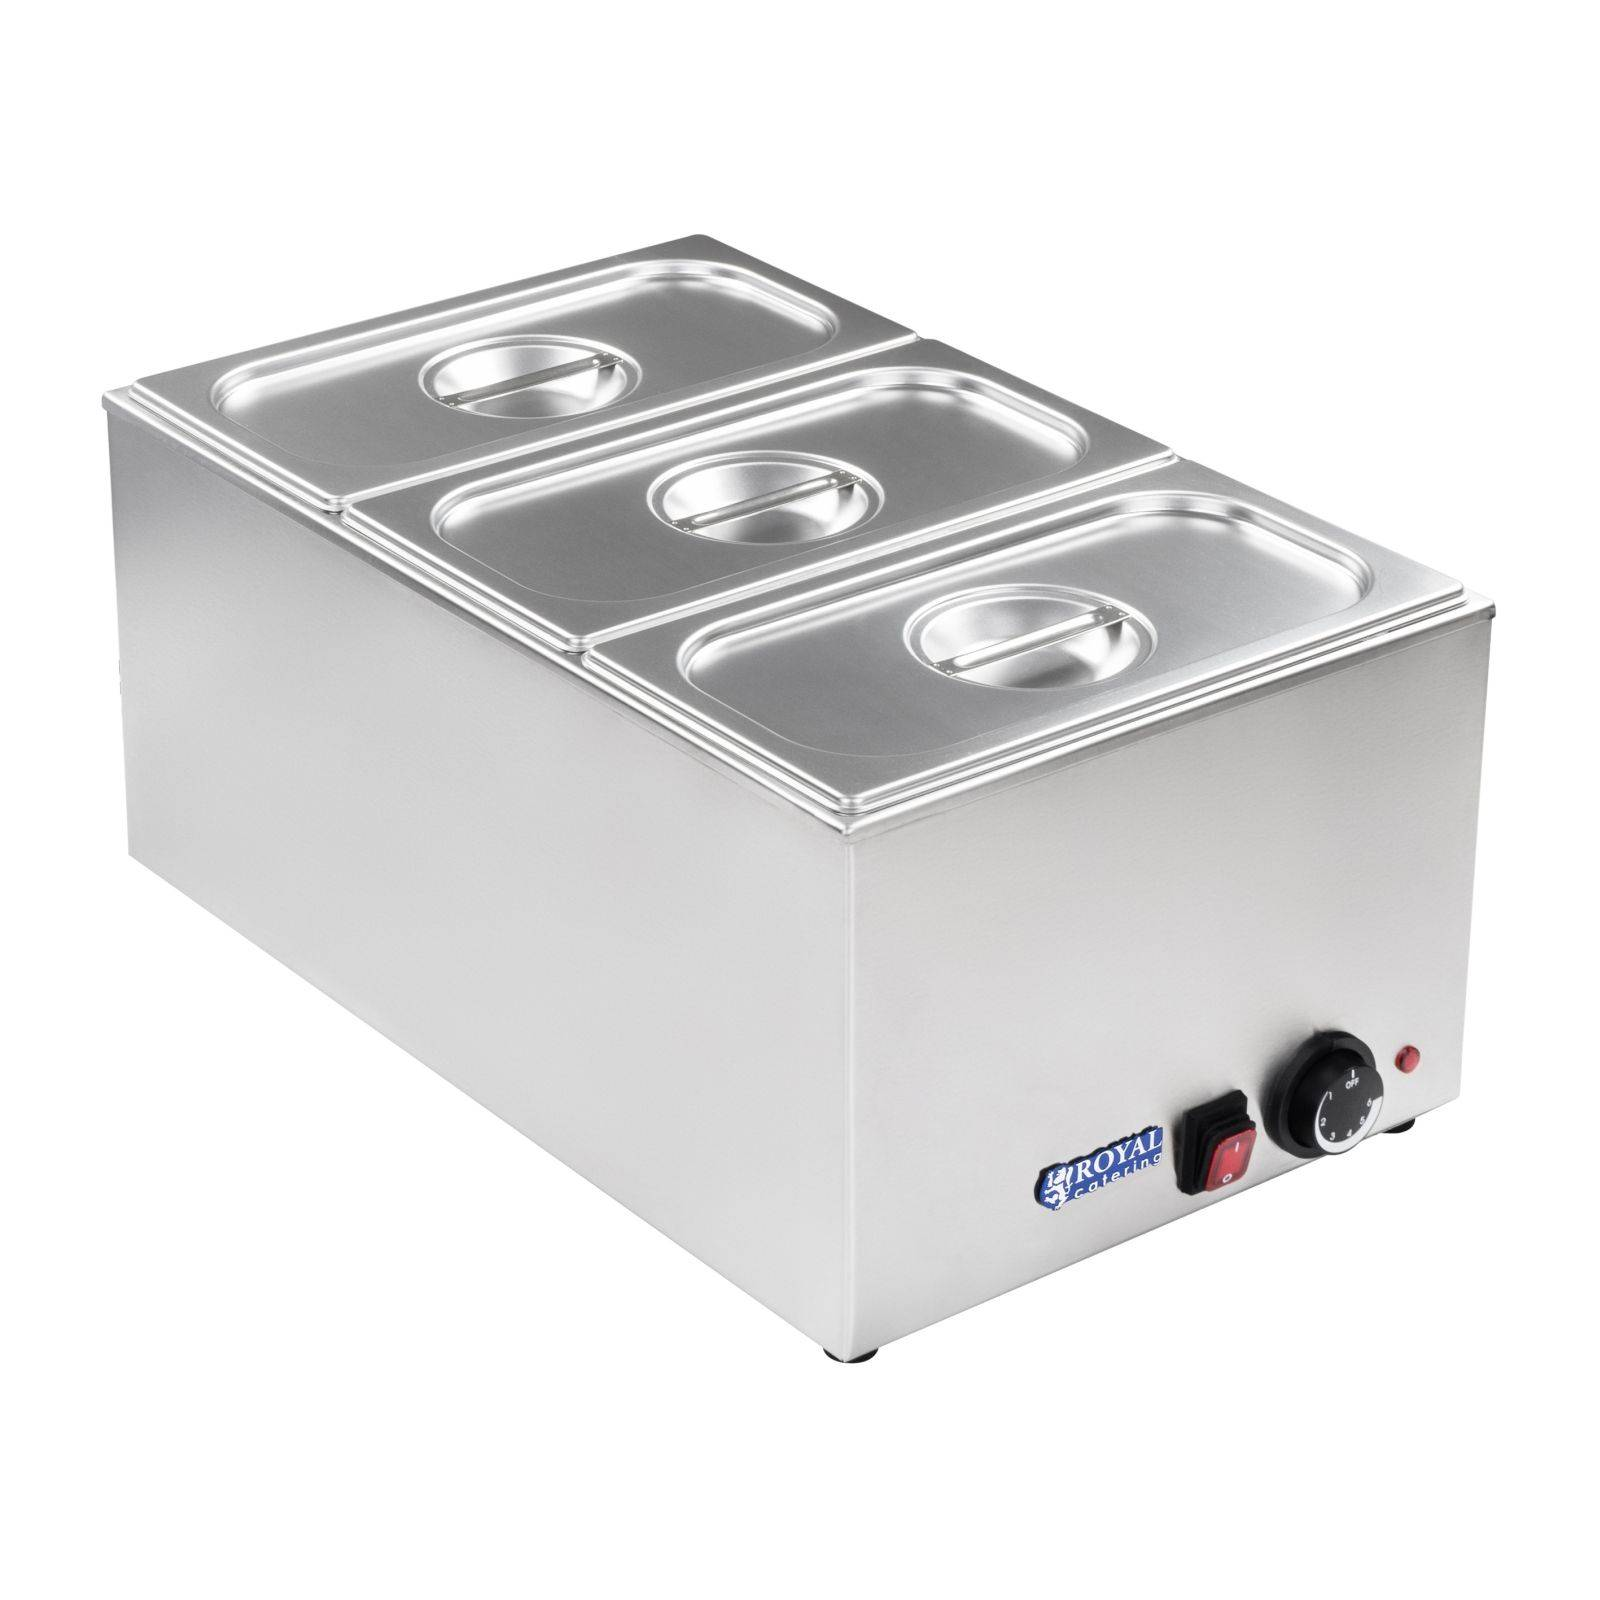 Royal Catering Bagnomaria professionale - Contenitore GN 1/3 RCBM-1/3-150-GN